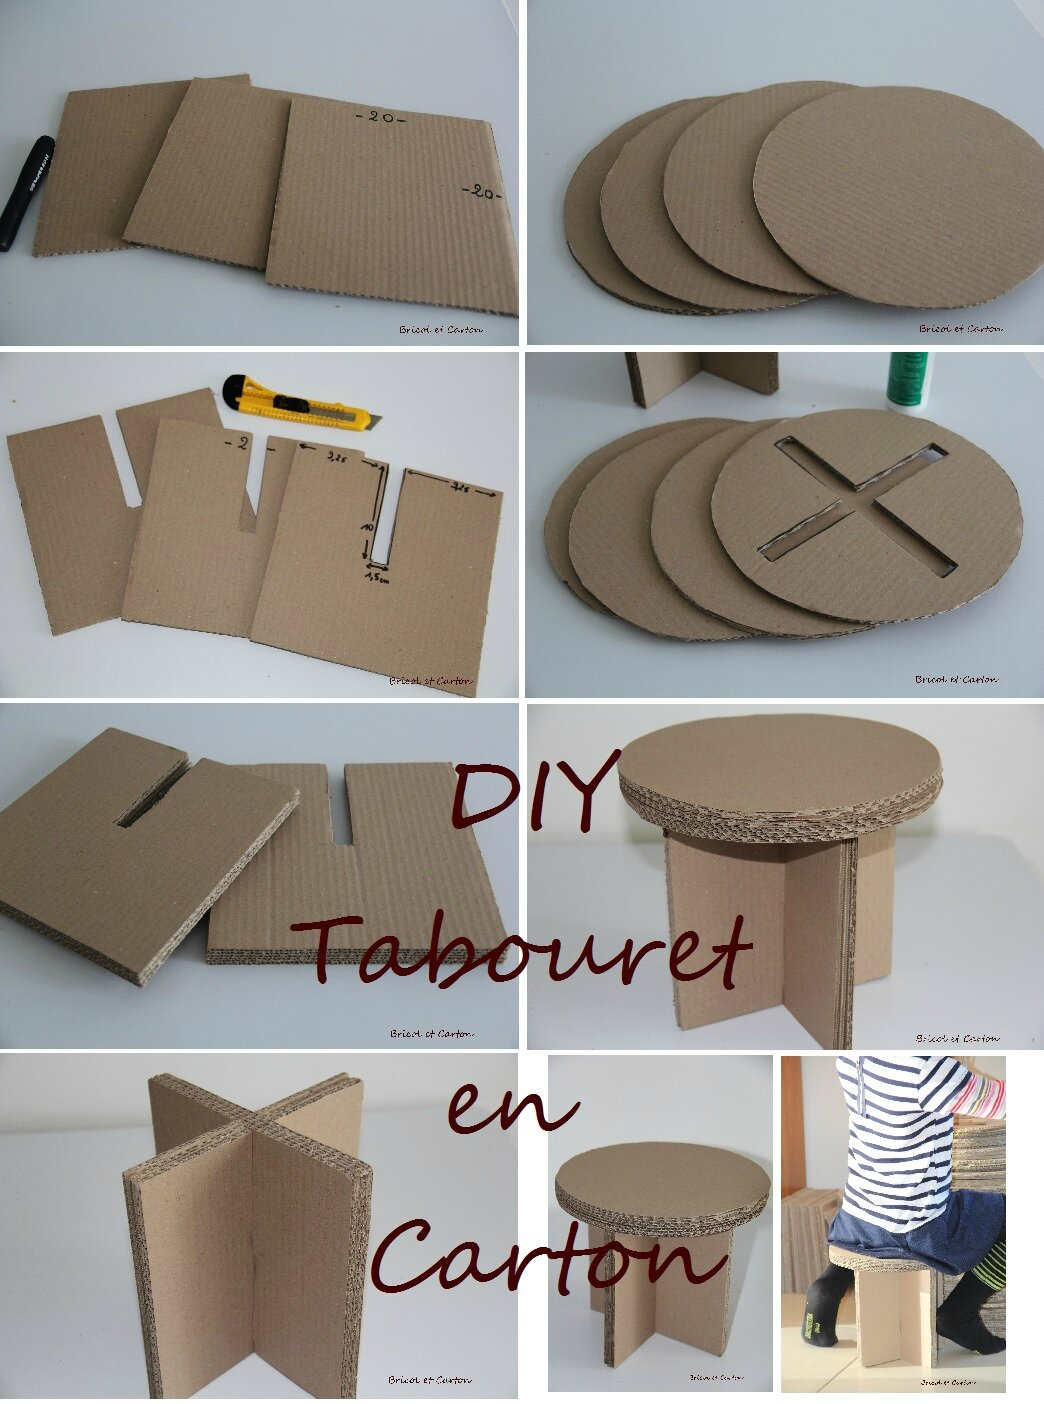 diy tabouret en carton bricol et carton. Black Bedroom Furniture Sets. Home Design Ideas